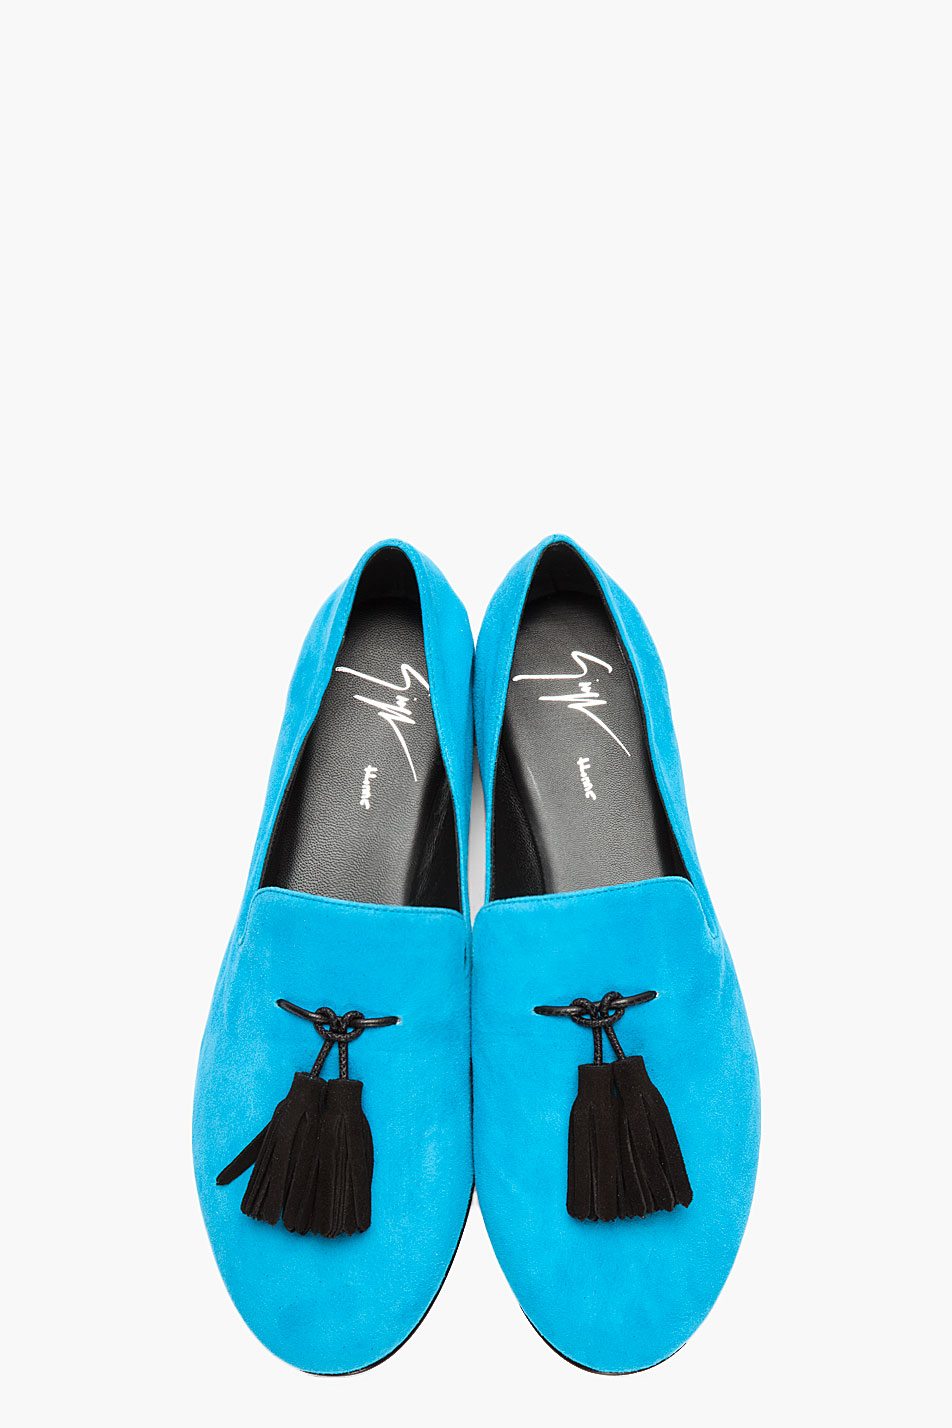 Lyst Giuseppe Zanotti Bright Blue Tassled Suede Kevin